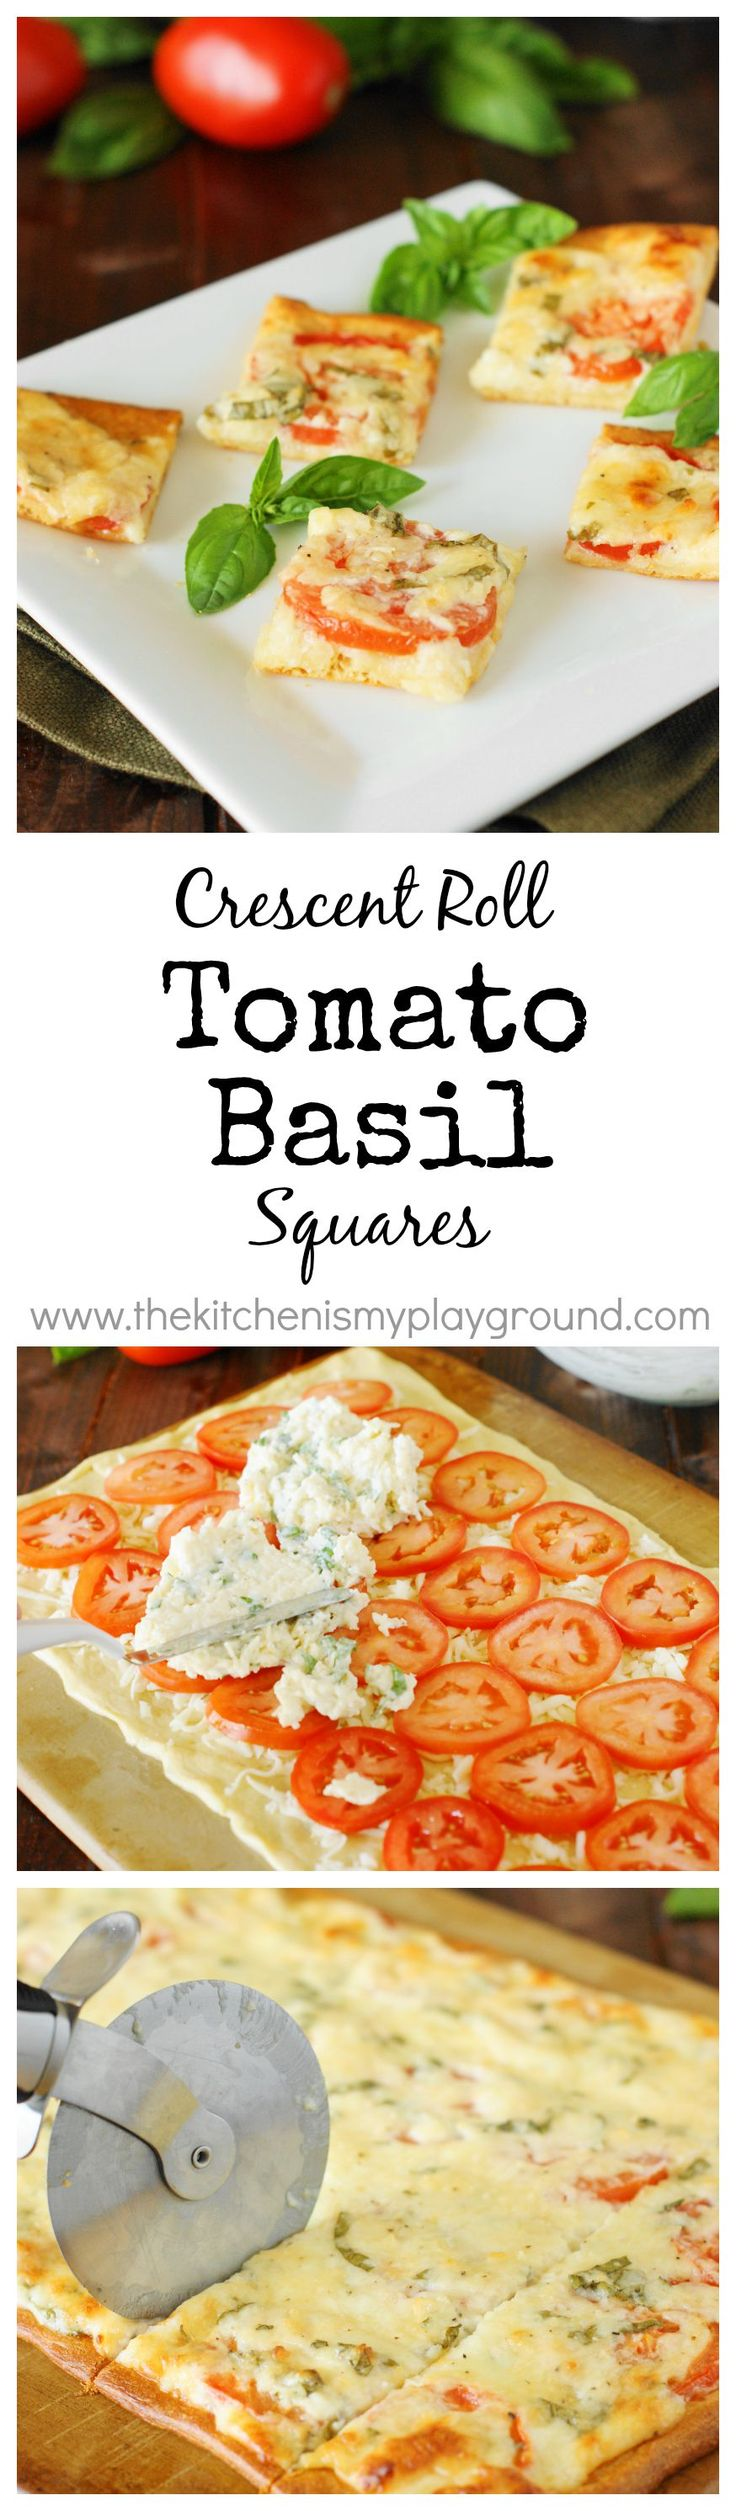 17 Best ideas about Tomato Basil Pizza on Pinterest | Basil pizza ...